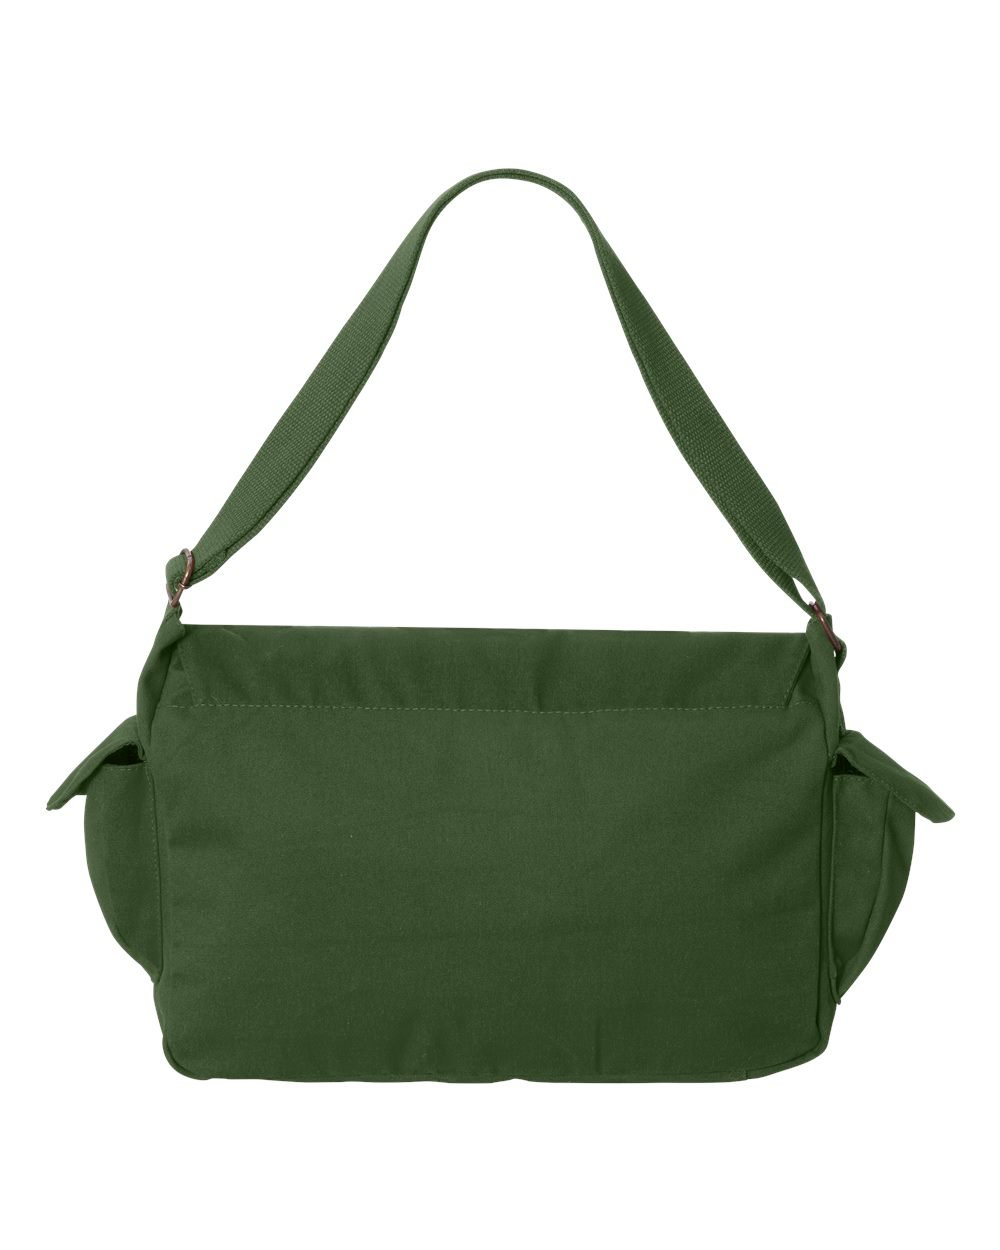 Tenacitee Fanged Pumpkin Khaki Green Raw Edge Canvas Messenger Bag